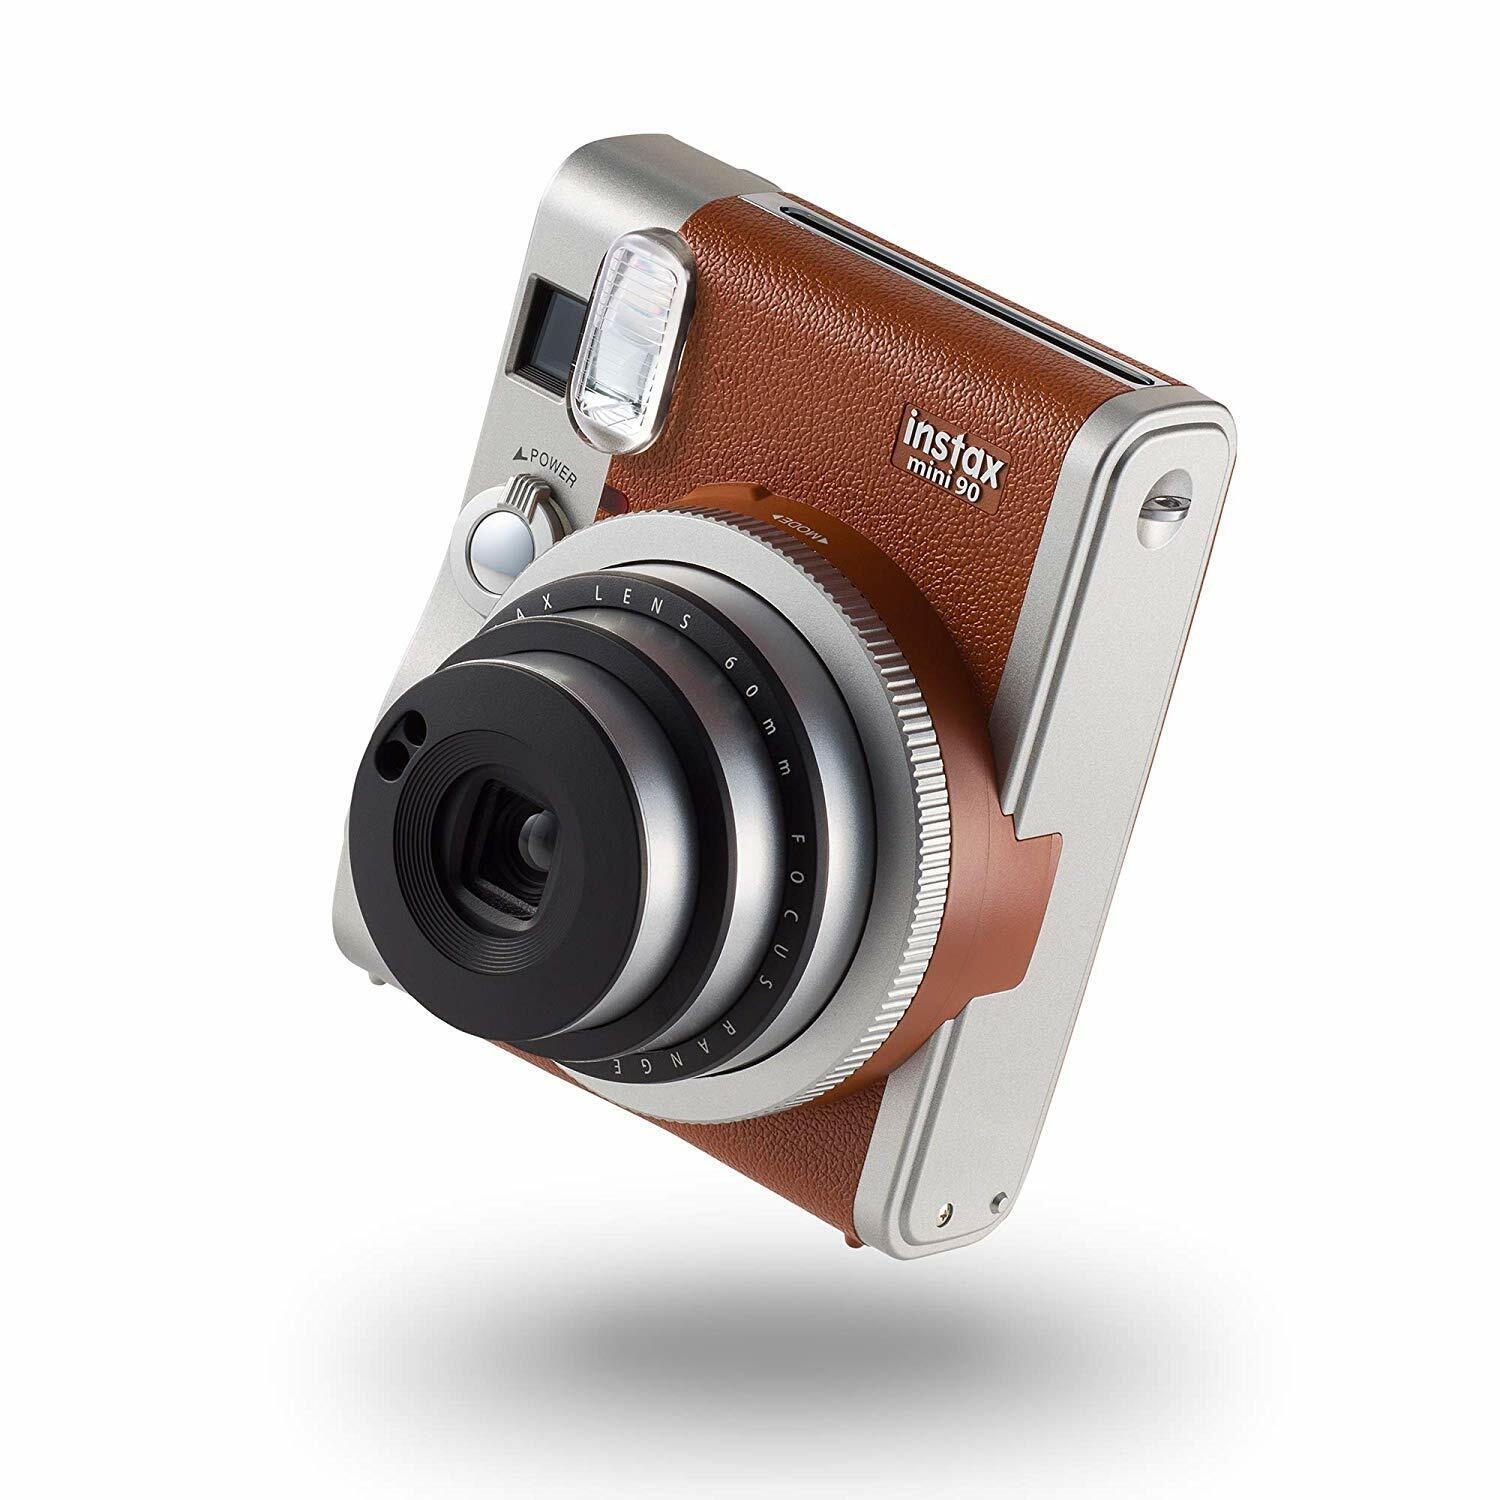 FOTOCAMERA ISTANTANEA DIGITALE FUJIFILM INSTAX MINI 90 NEO CLASSIC BROWN MARRONE